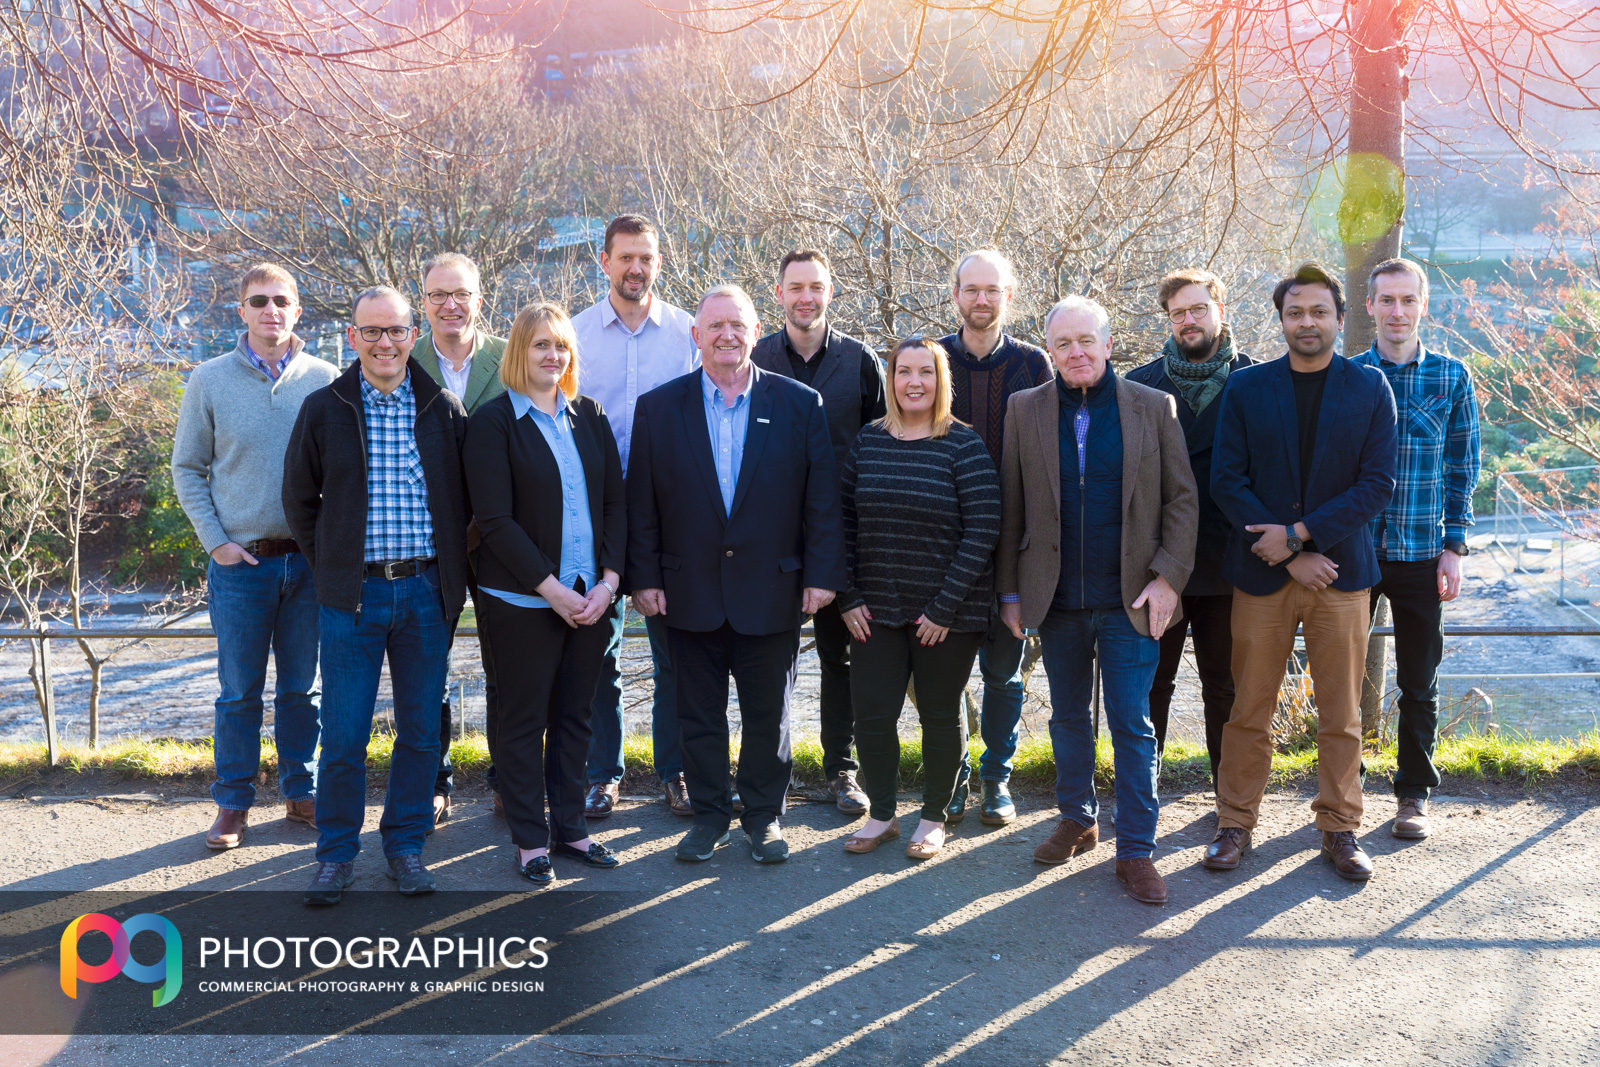 staff-headshot-photography-edinburgh-glasgow-scotland-1.jpg